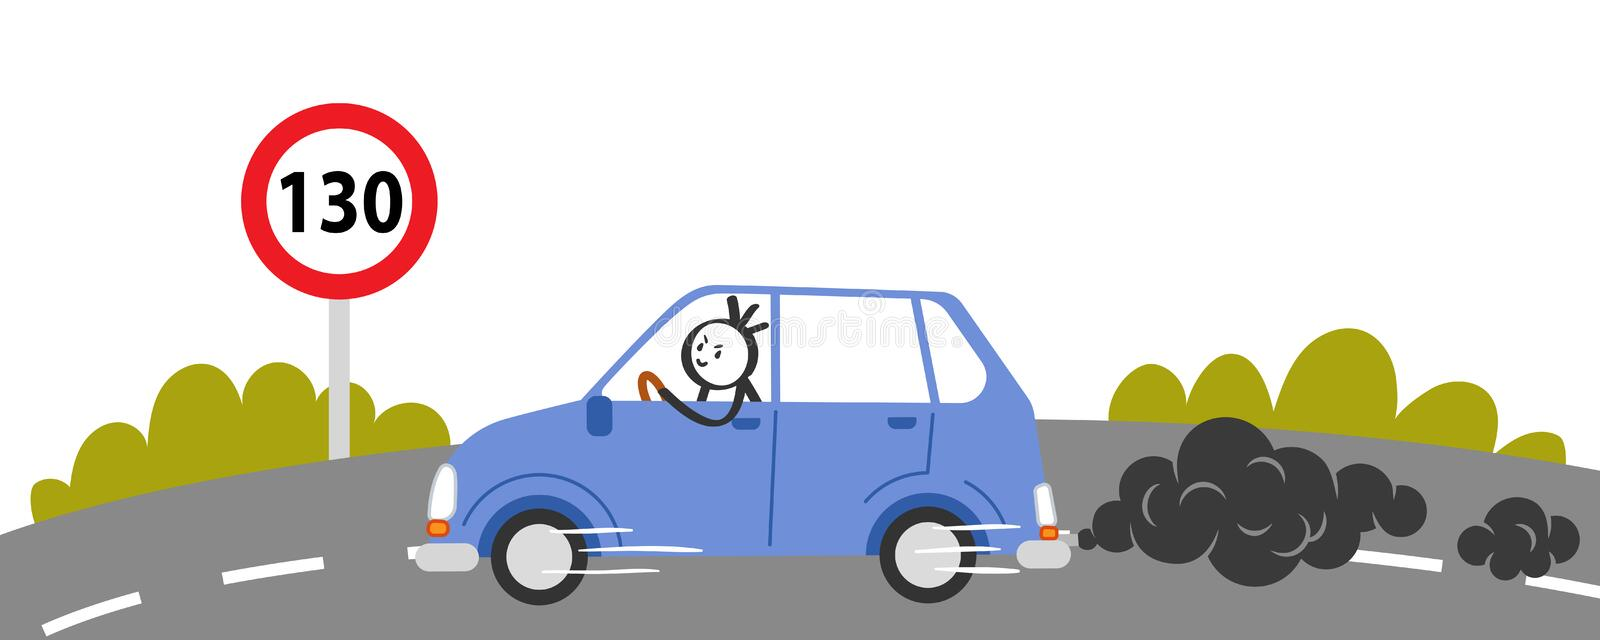 Speeding driver on the highway passing street limit sign. Stick man in blue car driving carelessly vector illustration